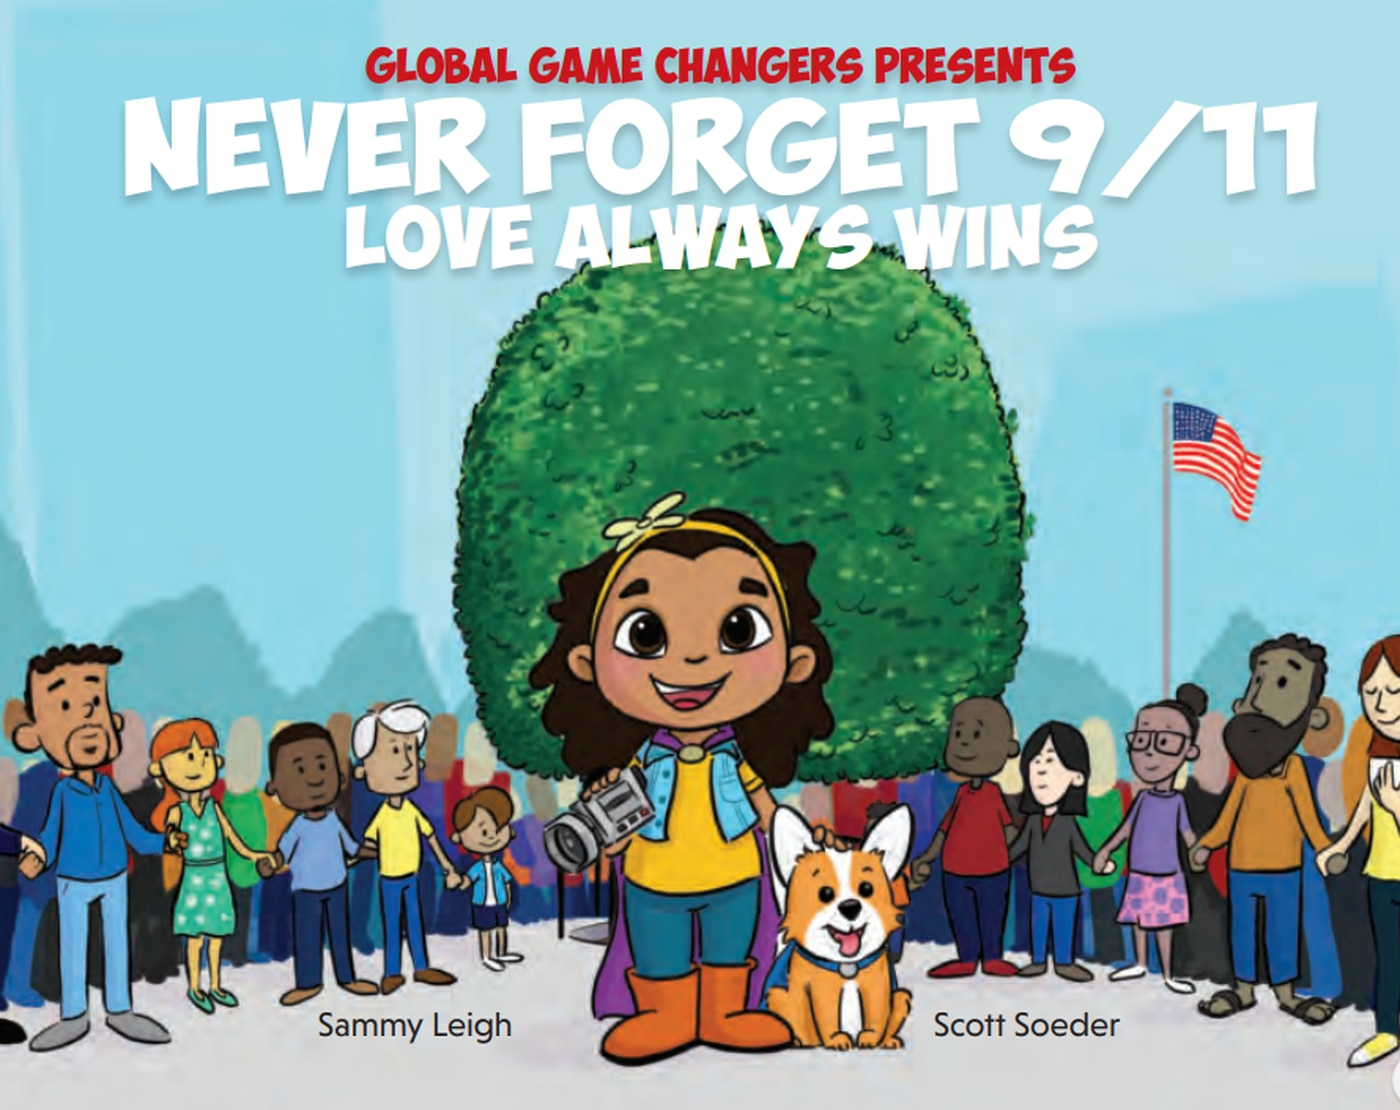 Global Game Changers launches 9/11 website